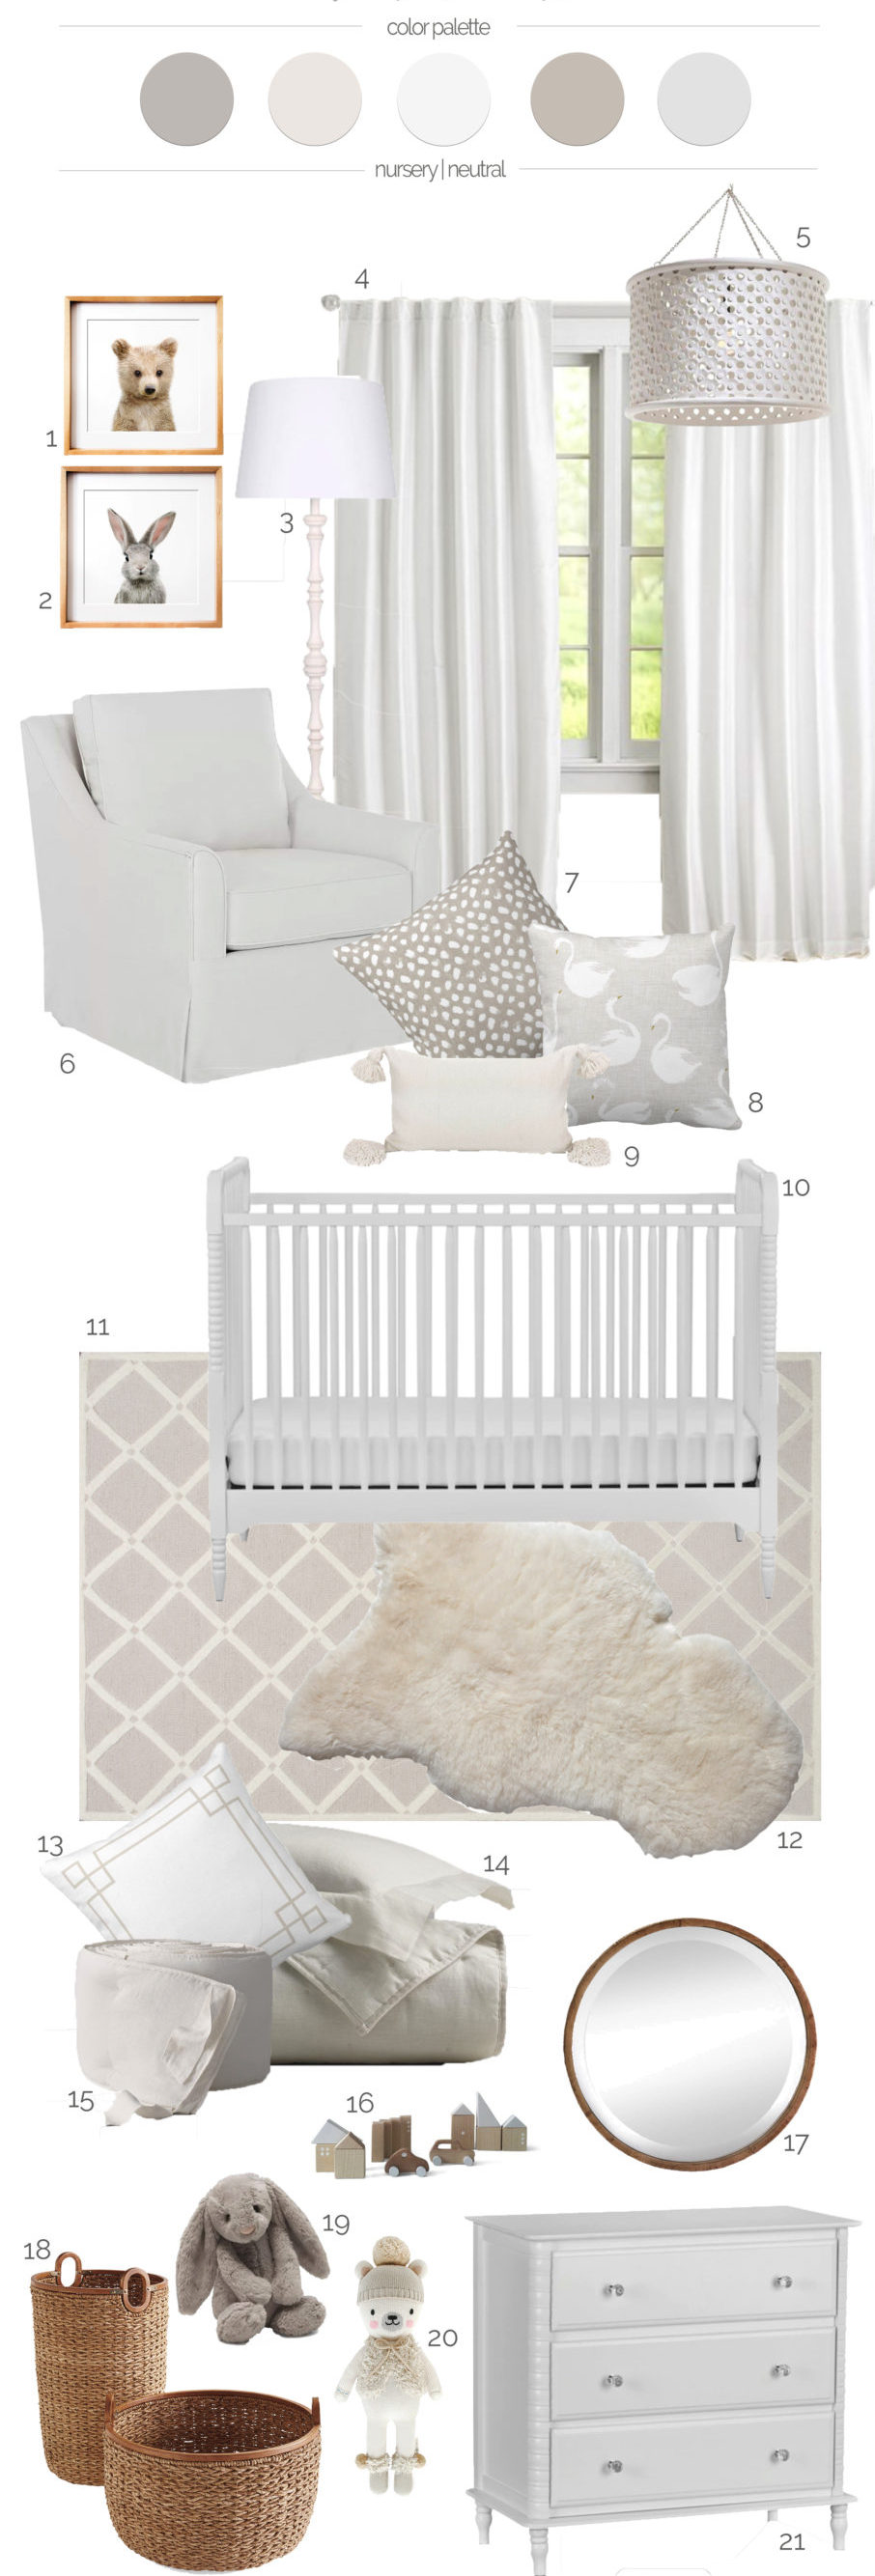 Designing a gender neutralnursery with furniture in classic designs and incorporating simple accessories will easily allow the addition of color and pattern to be added onceyour little one arrives.